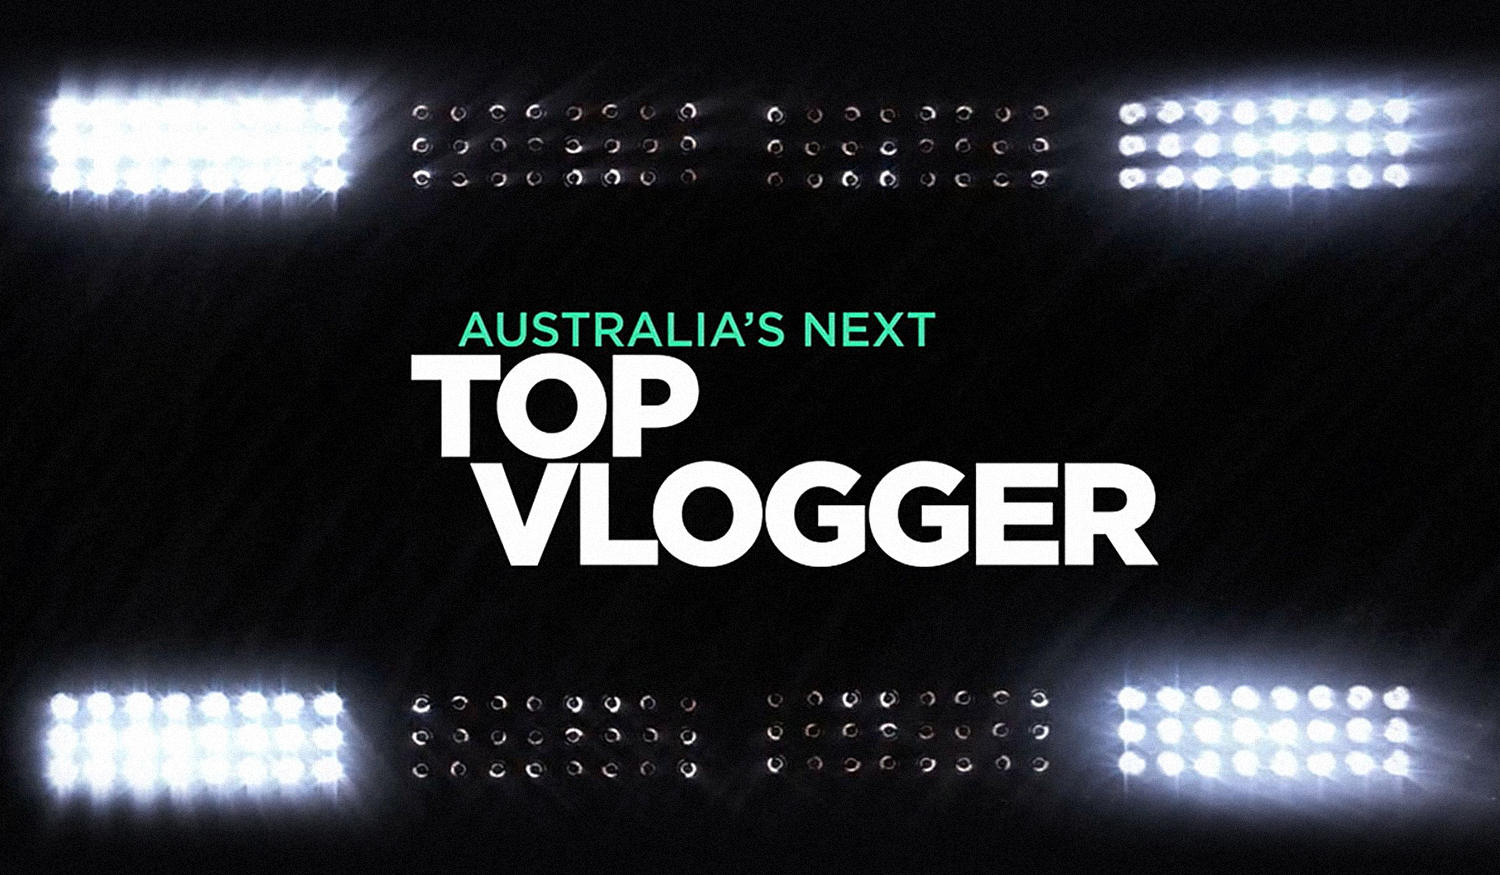 Australia's next top vlogger